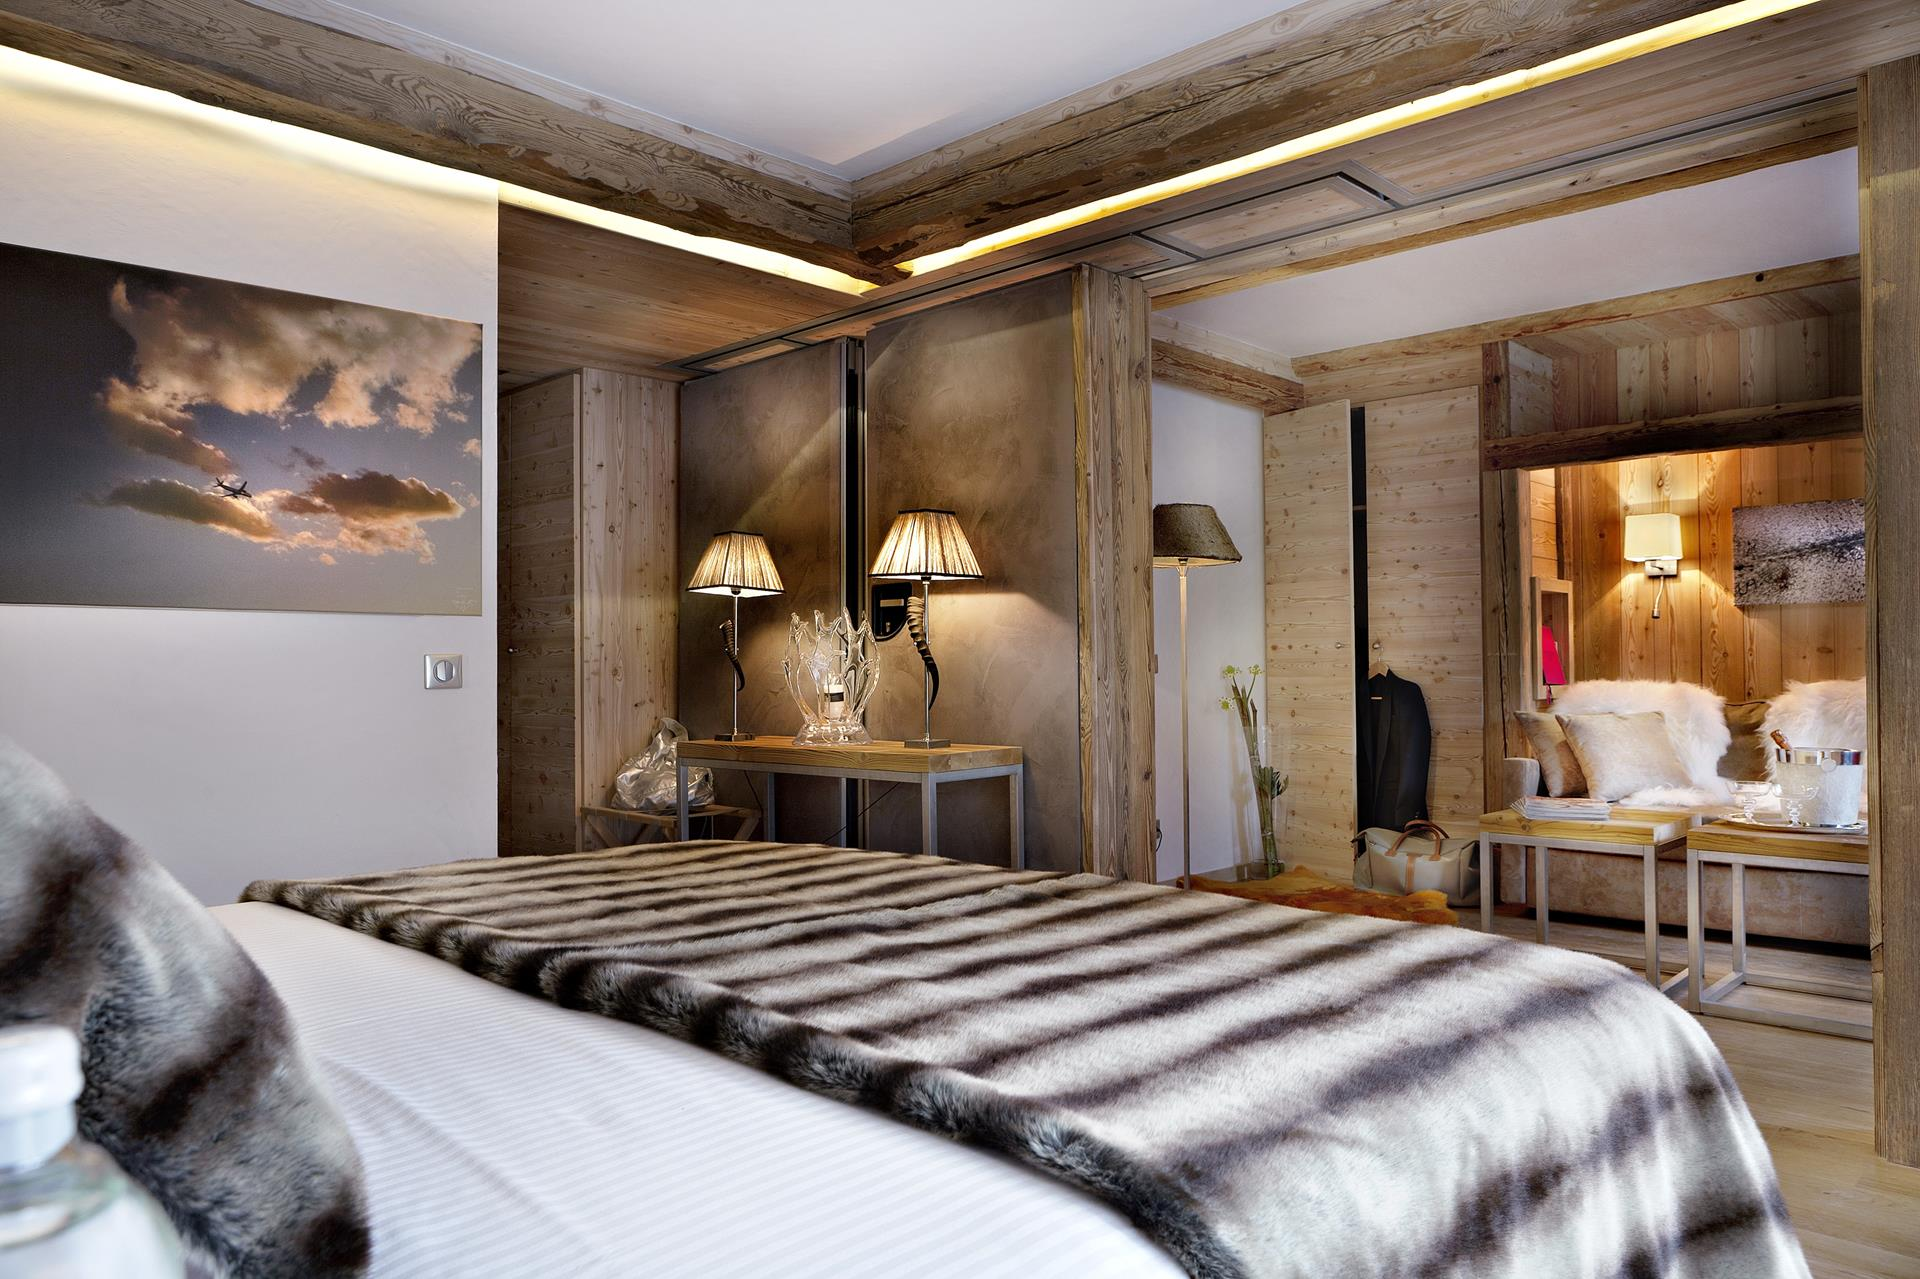 suites la clusaz hotel au coeur du village la clusaz. Black Bedroom Furniture Sets. Home Design Ideas